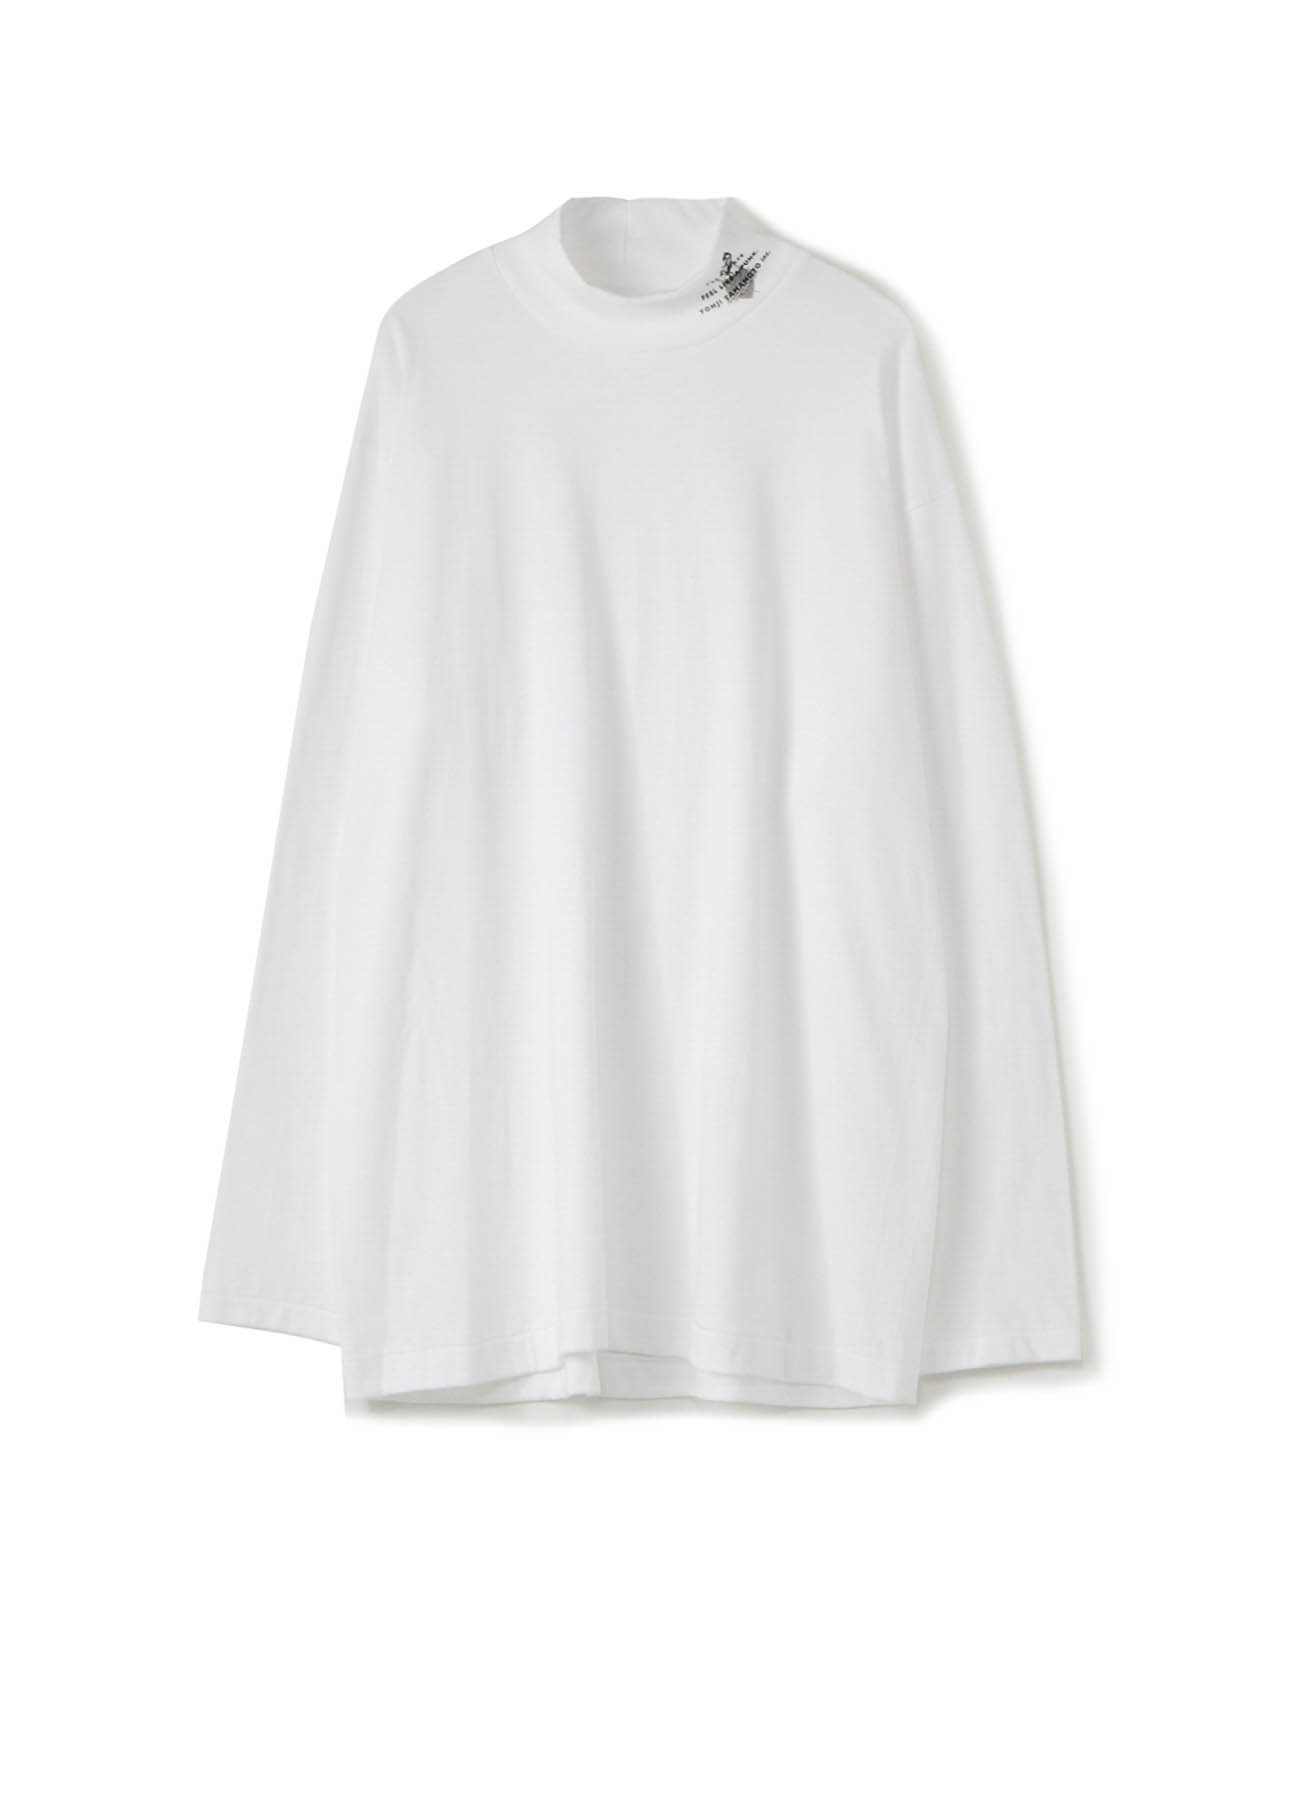 20/CottonJersey Angel Heart High Neck T-Shirt